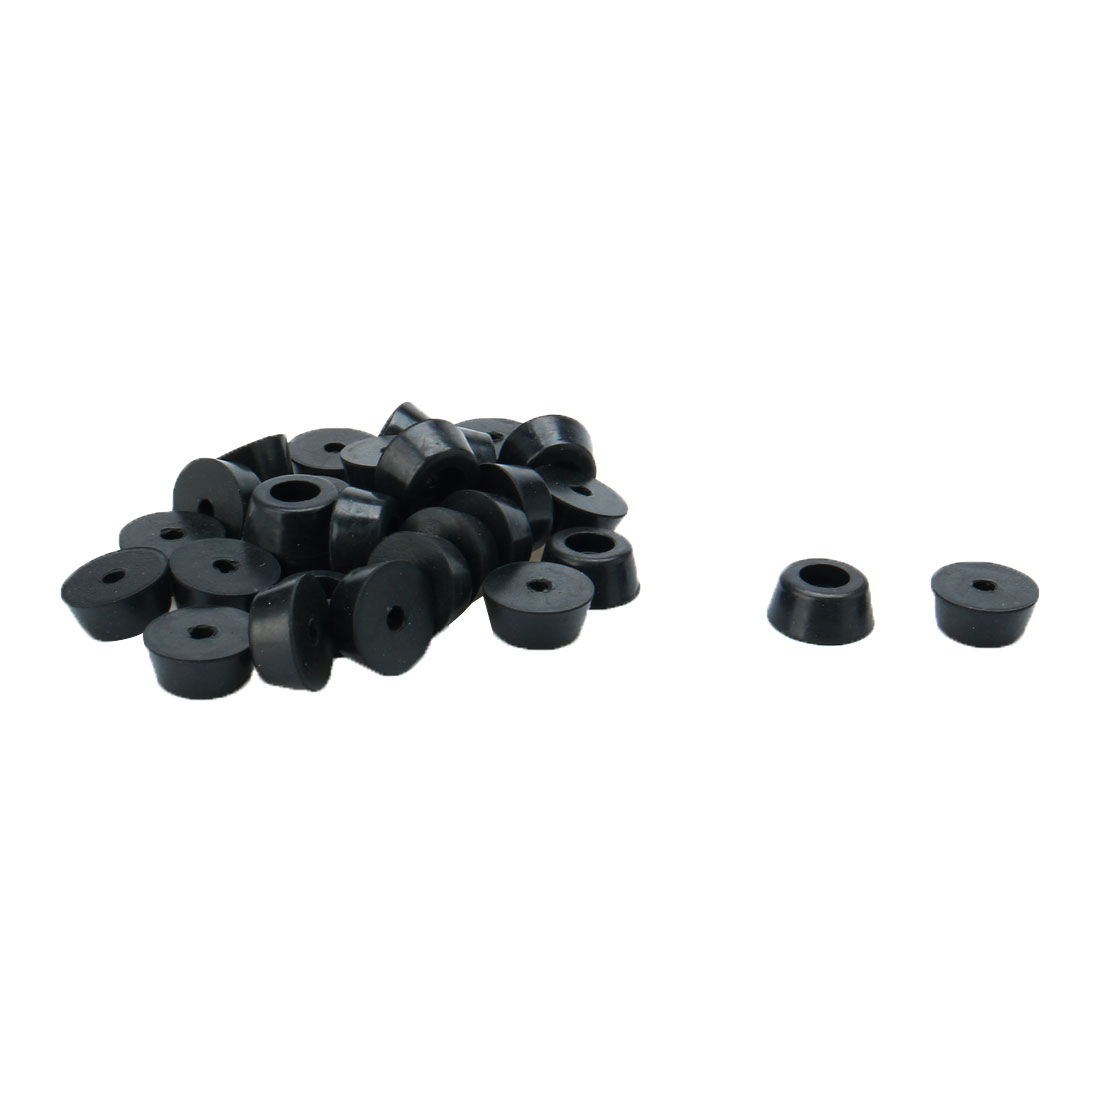 30Pcs Home Office 12mm Hole Diameter Furniture Table Chair Leg Protector Cone Shaped Black Rubber Feet Pads